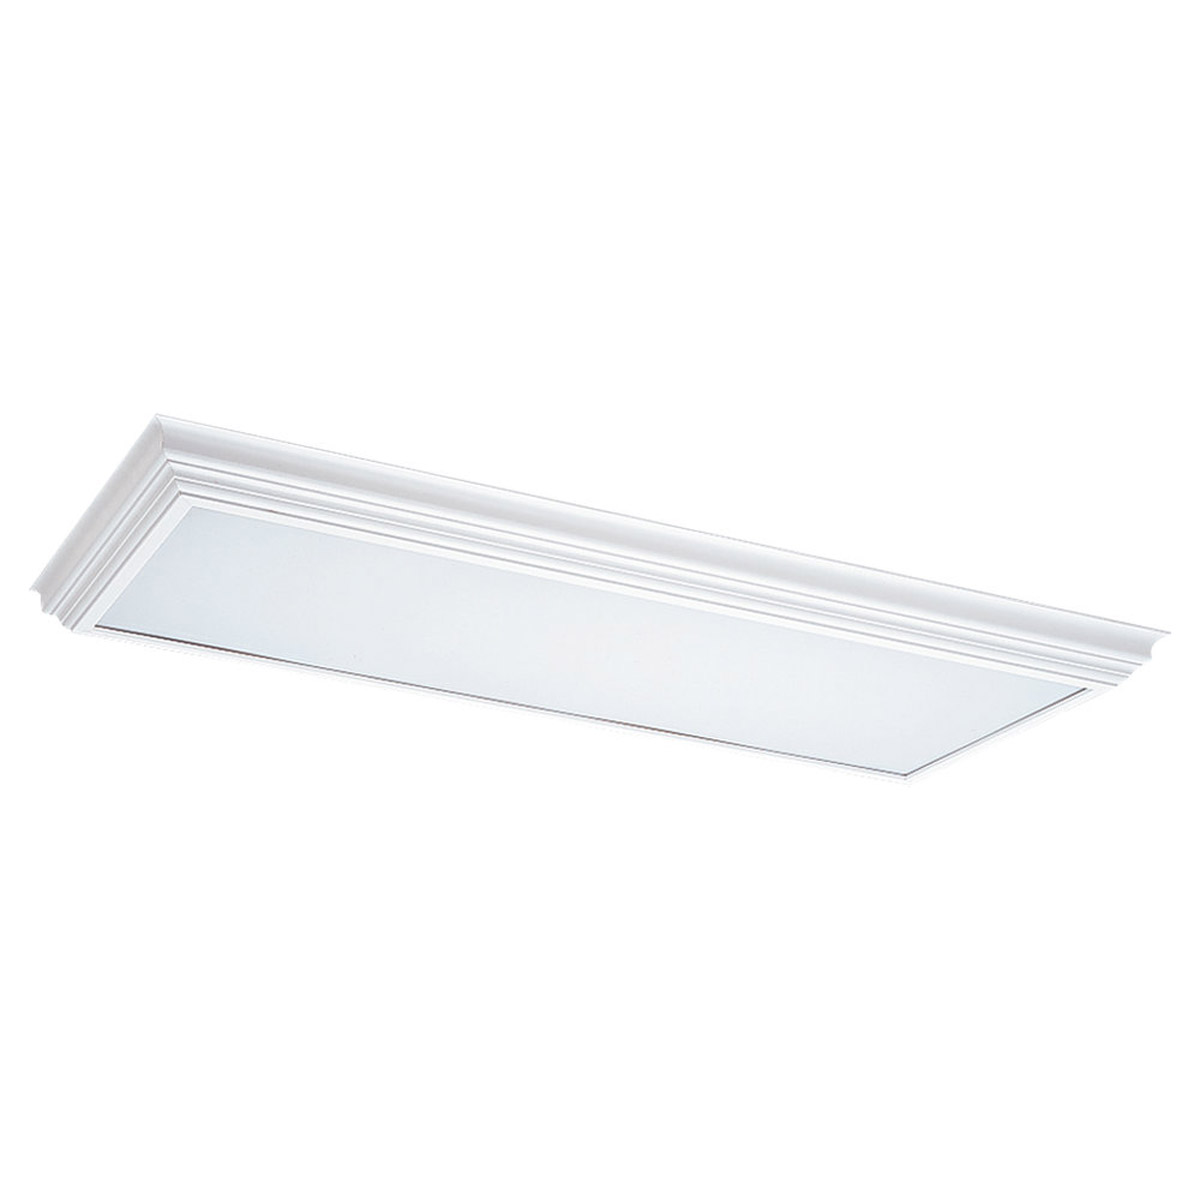 Sea Gull Lighting Signature 4 Light Fluorescent Trim Only in White 5979-15 photo